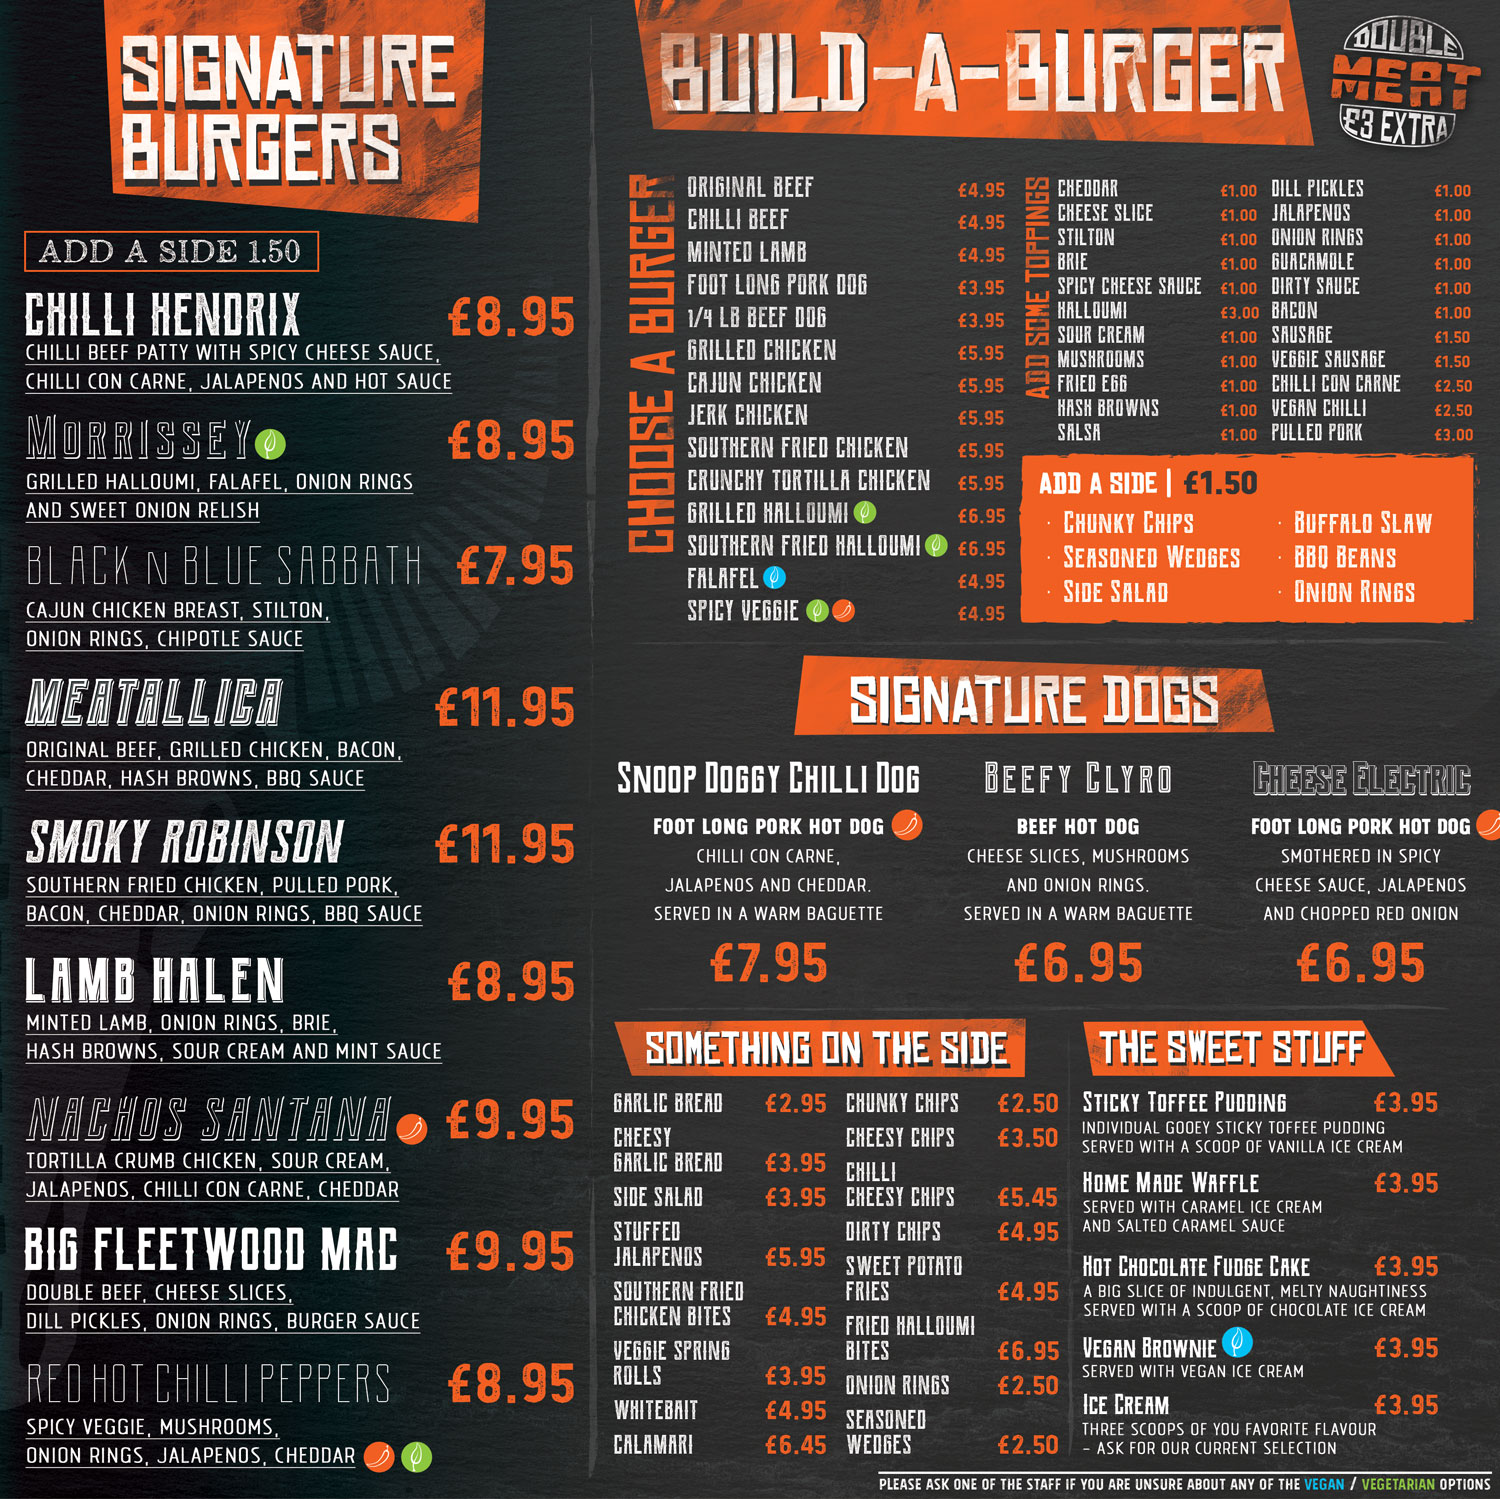 Buffalo Menu side B